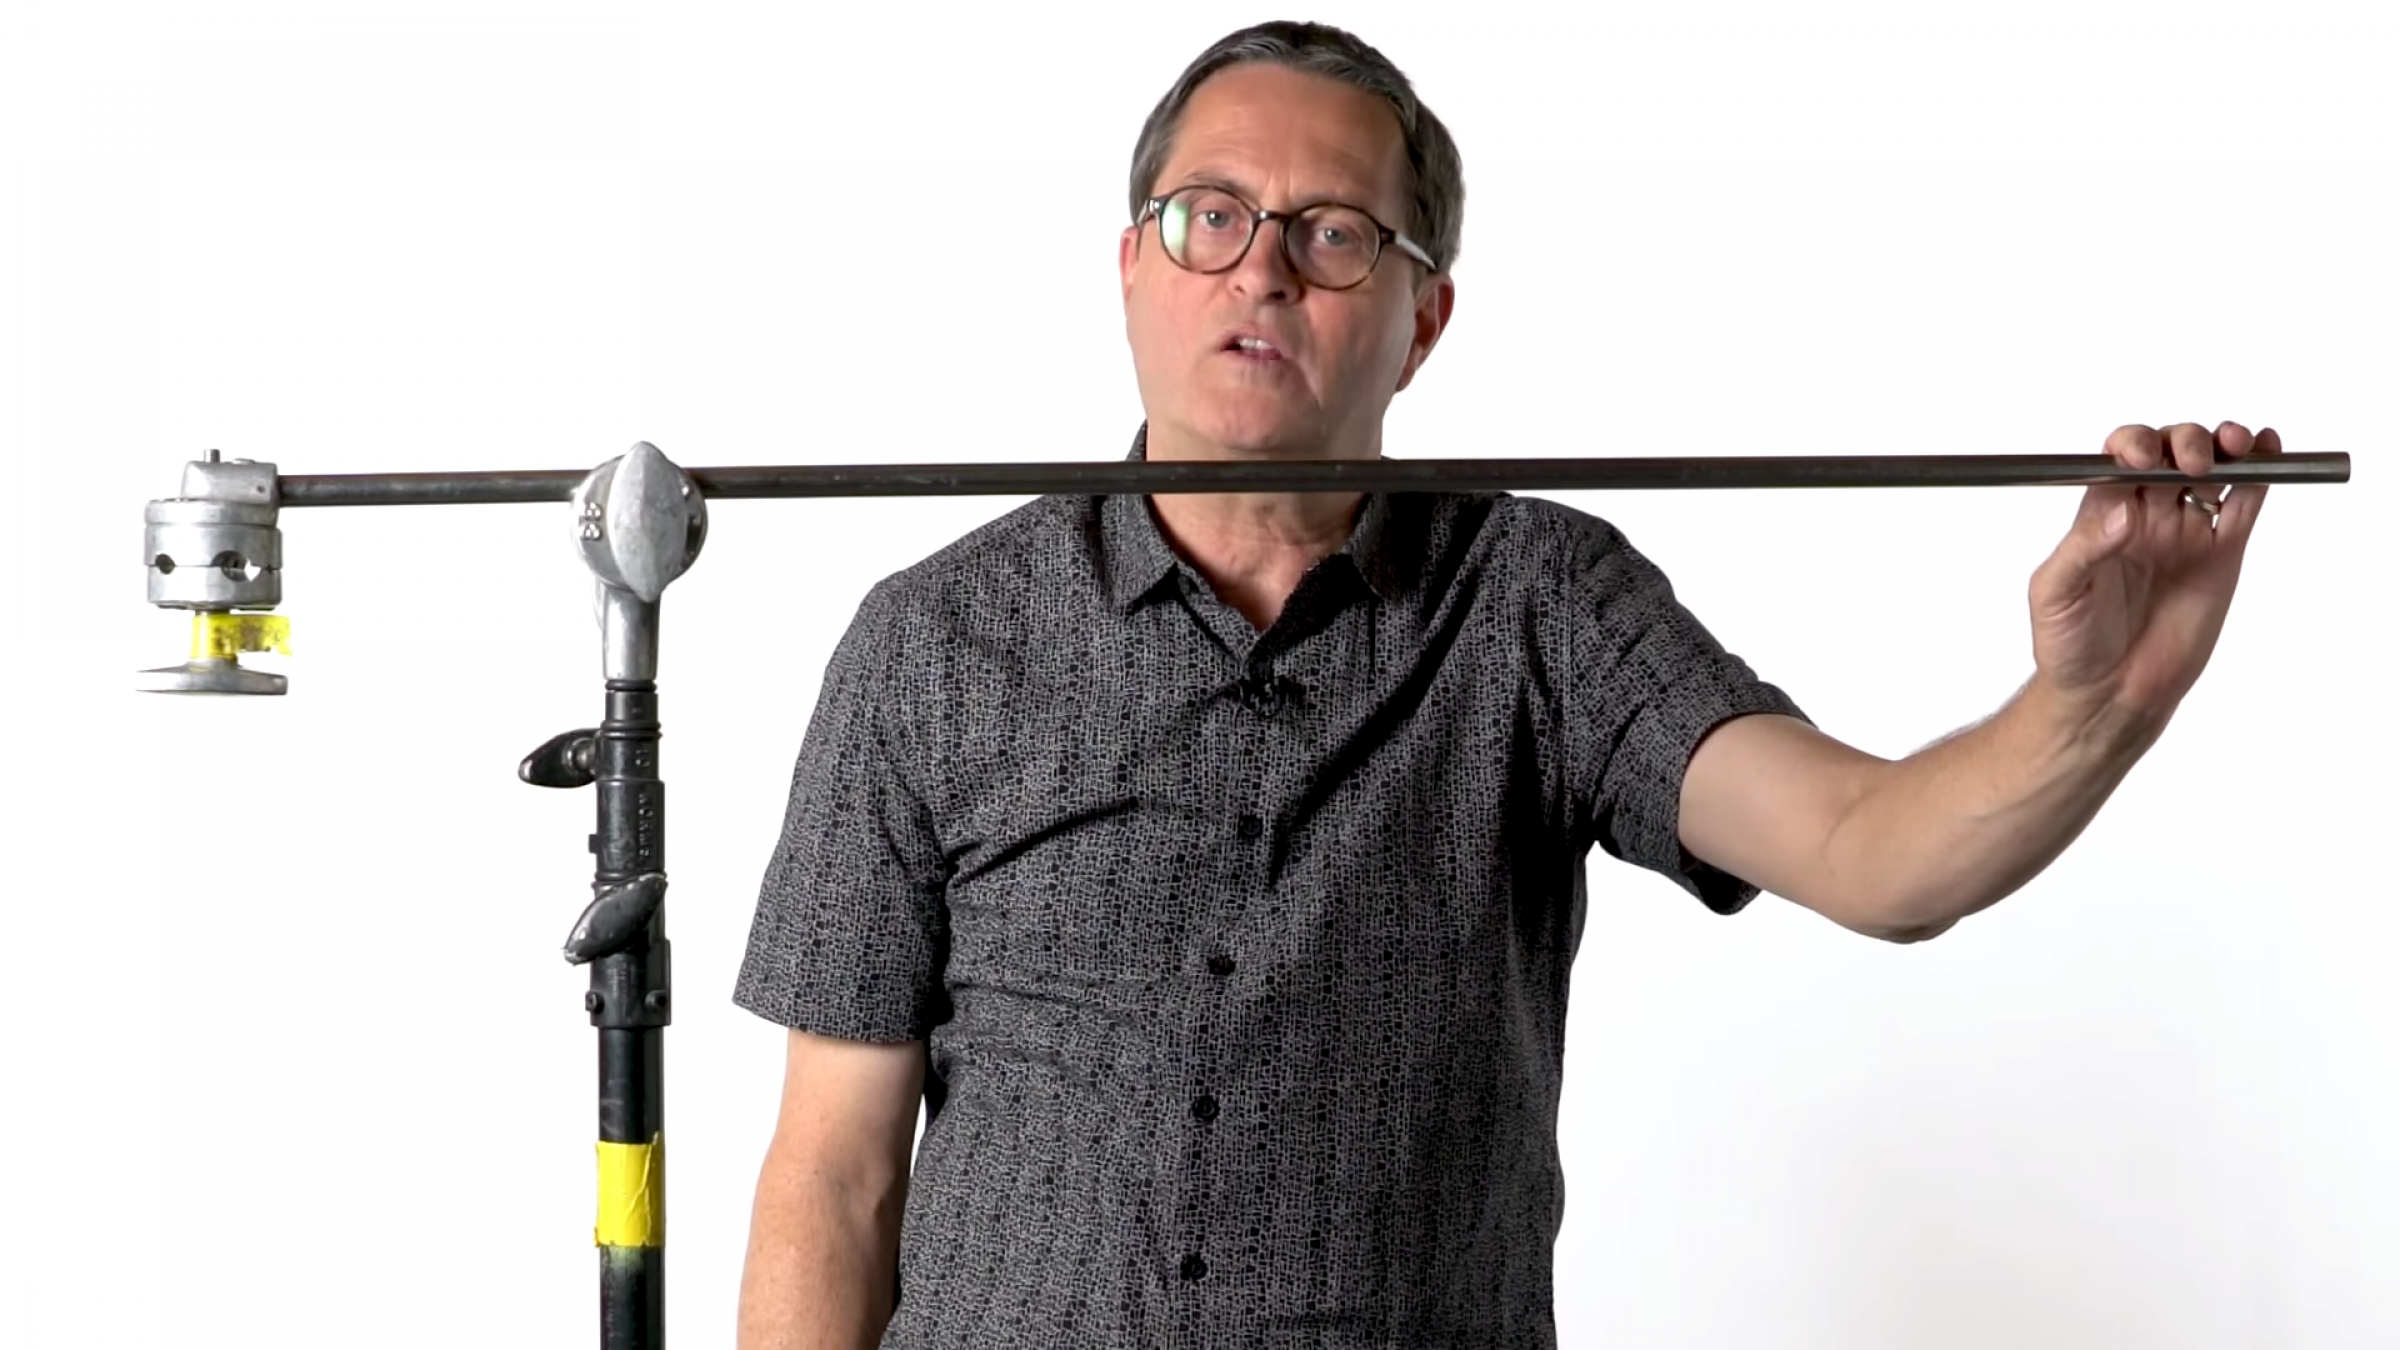 Watch: How to Maximize the Usable Distance of Your C-Stand